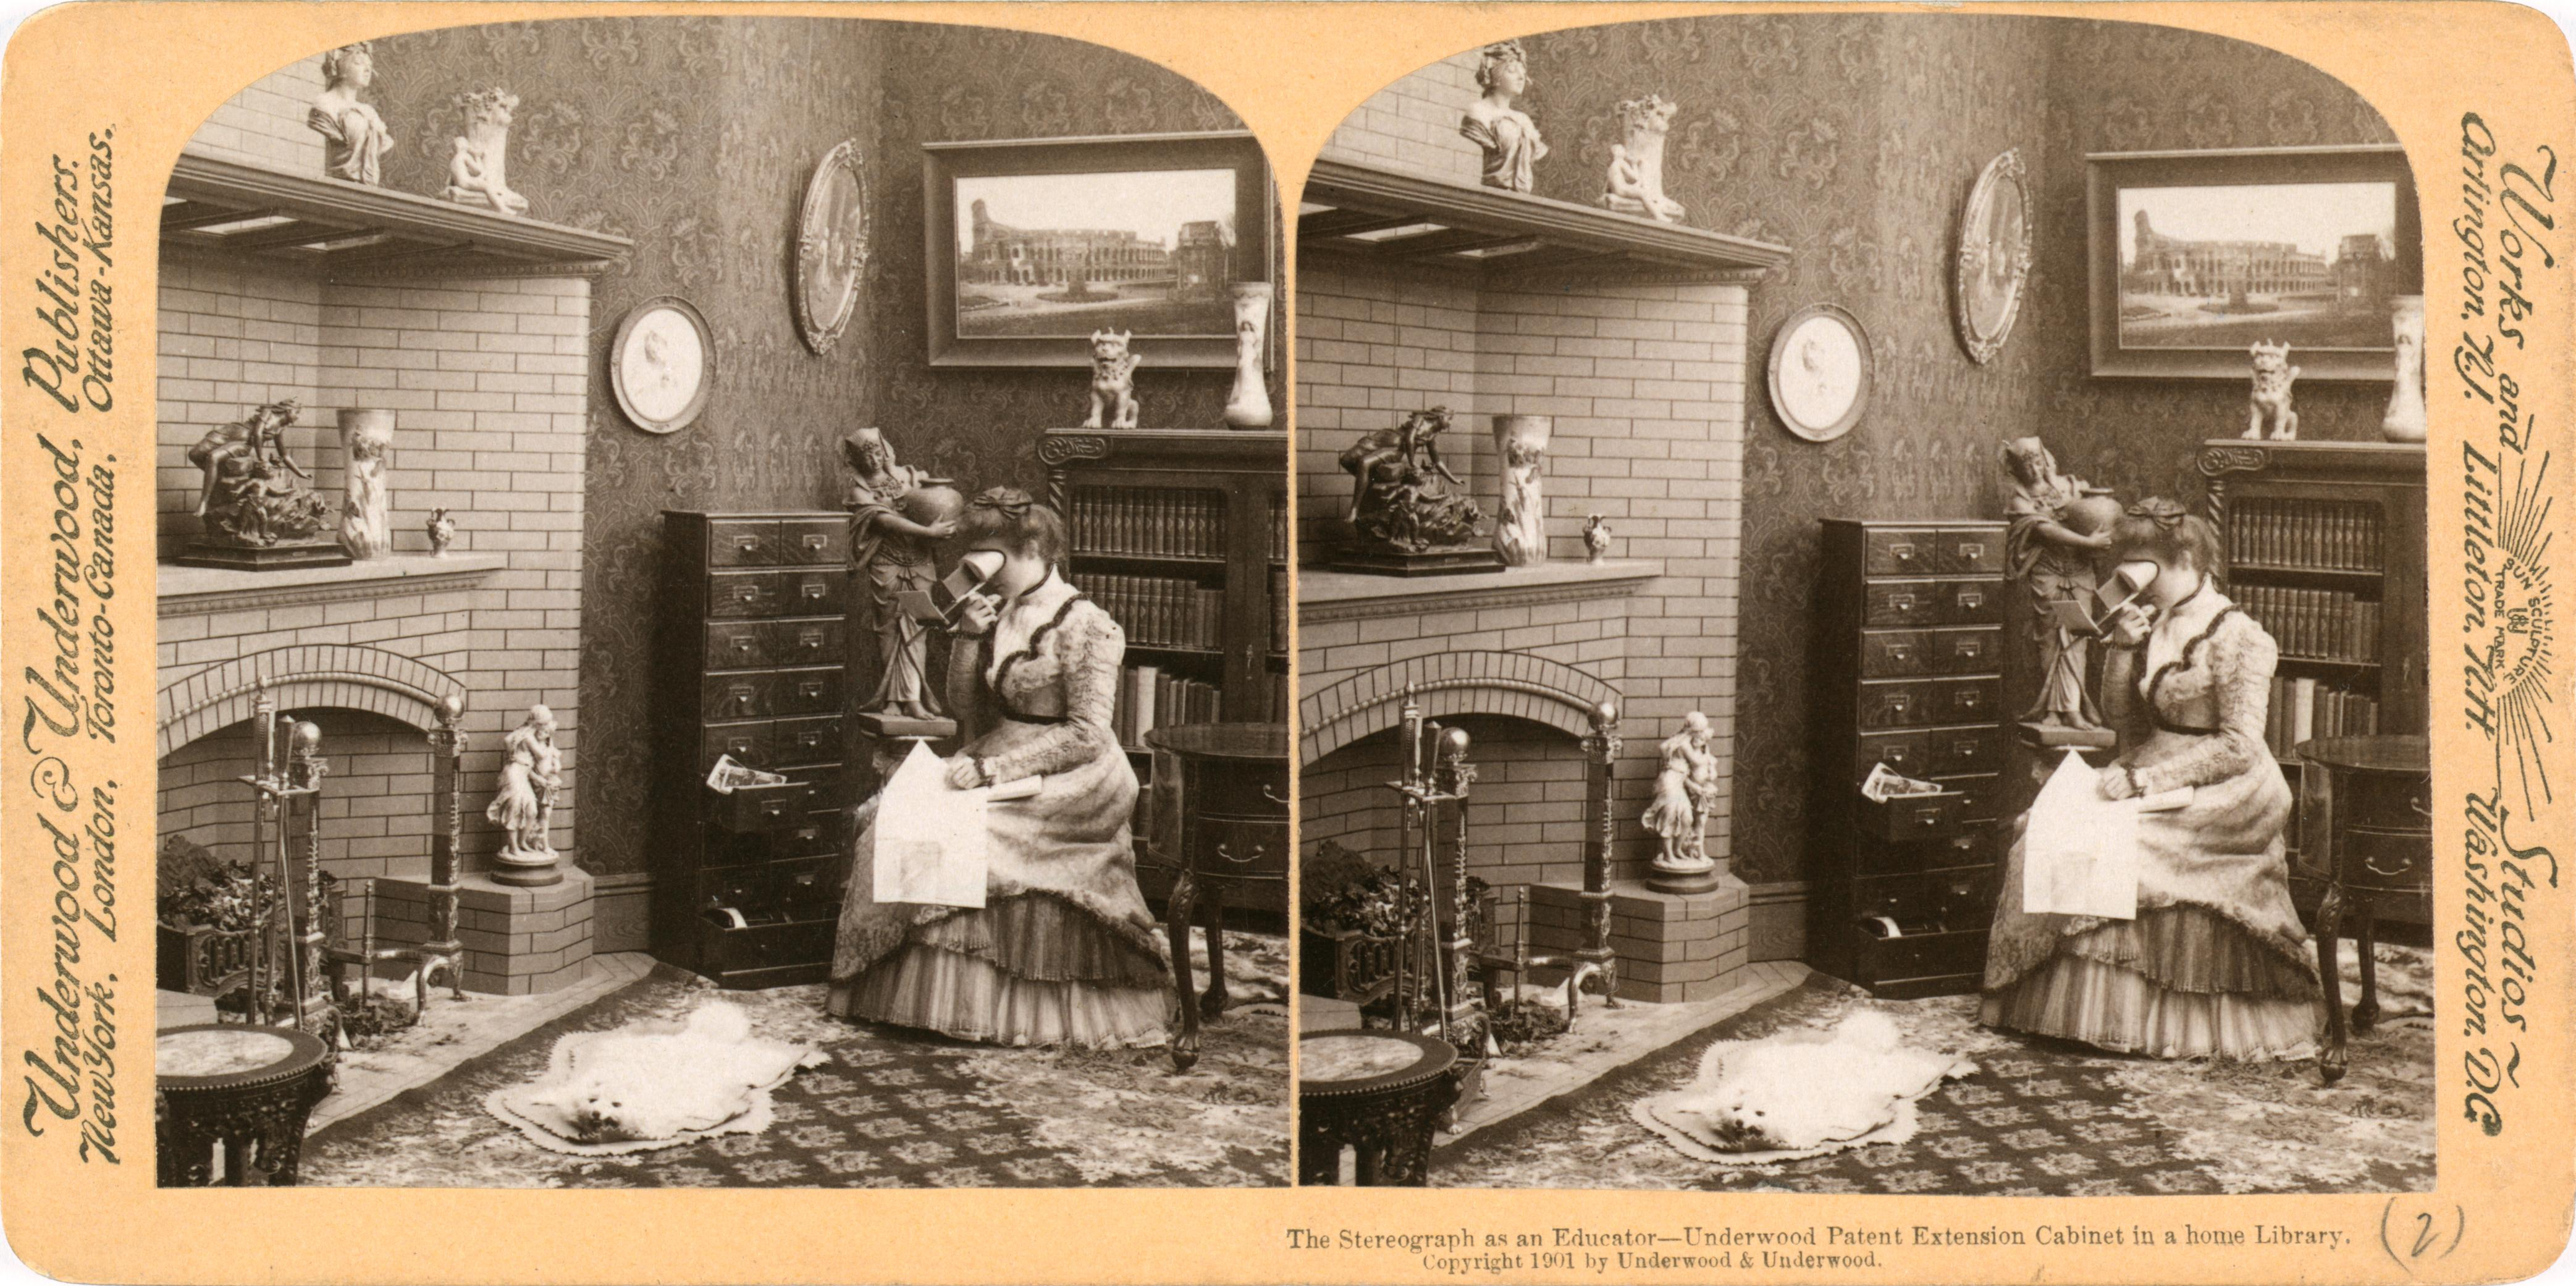 """""""The stereograph as an educator - Underwood patent extension cabinet in a home library."""" Library of Congress description: """"Photograph shows a woman viewing stereographs in her home; she is sitting in front of a fireplace with a cabinet for stereographs on her right."""" Date1901 SourceLibrary of Congress Prints and Photographs Division, Stereograph Cards collection. http://hdl.loc.gov/loc.pnp/ppmsca.08781, Underwood & Underwood, PD-US"""